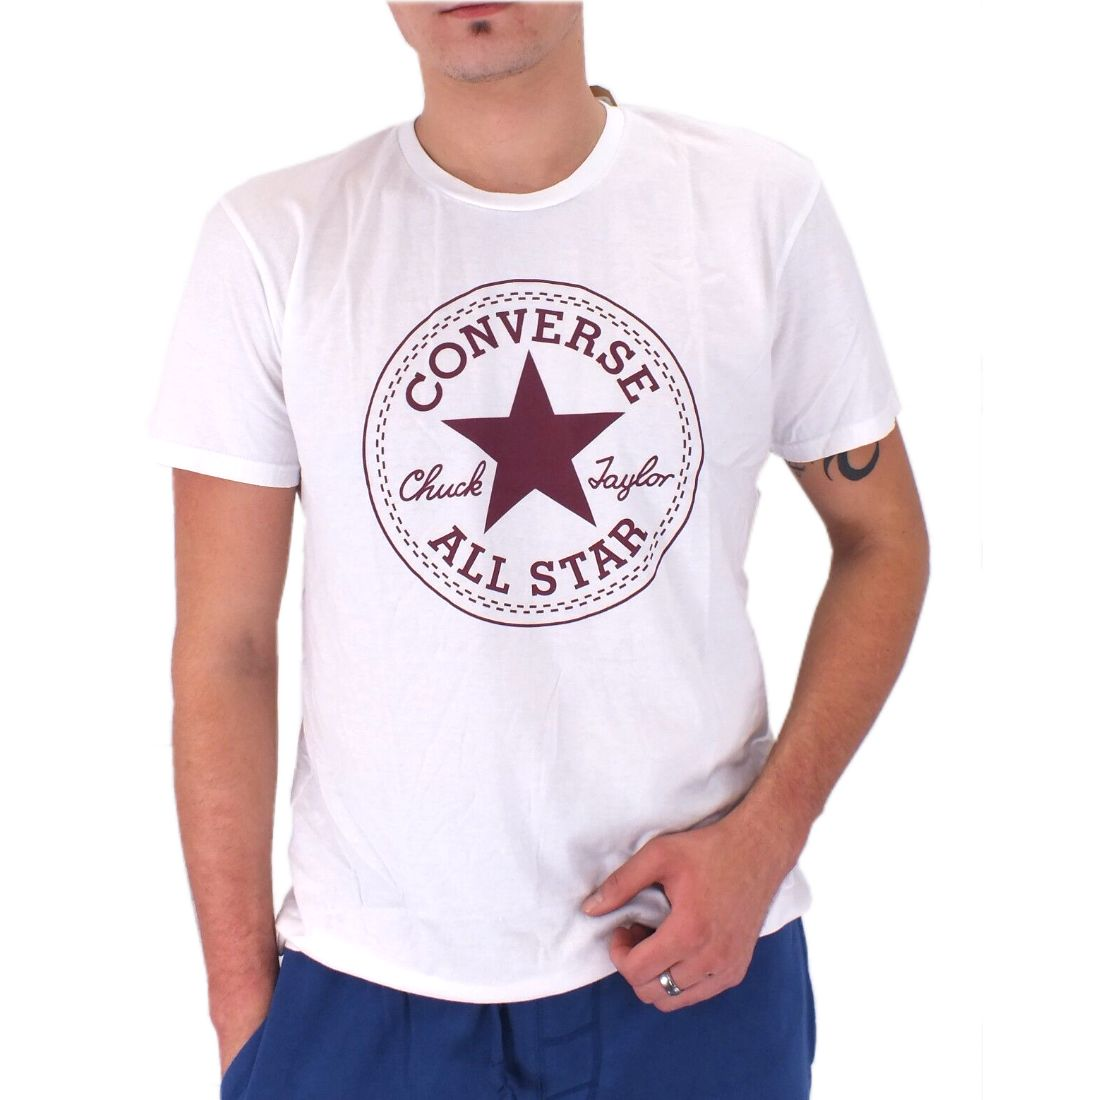 converse chucks patch shirt crew t shirt herren blau wei. Black Bedroom Furniture Sets. Home Design Ideas